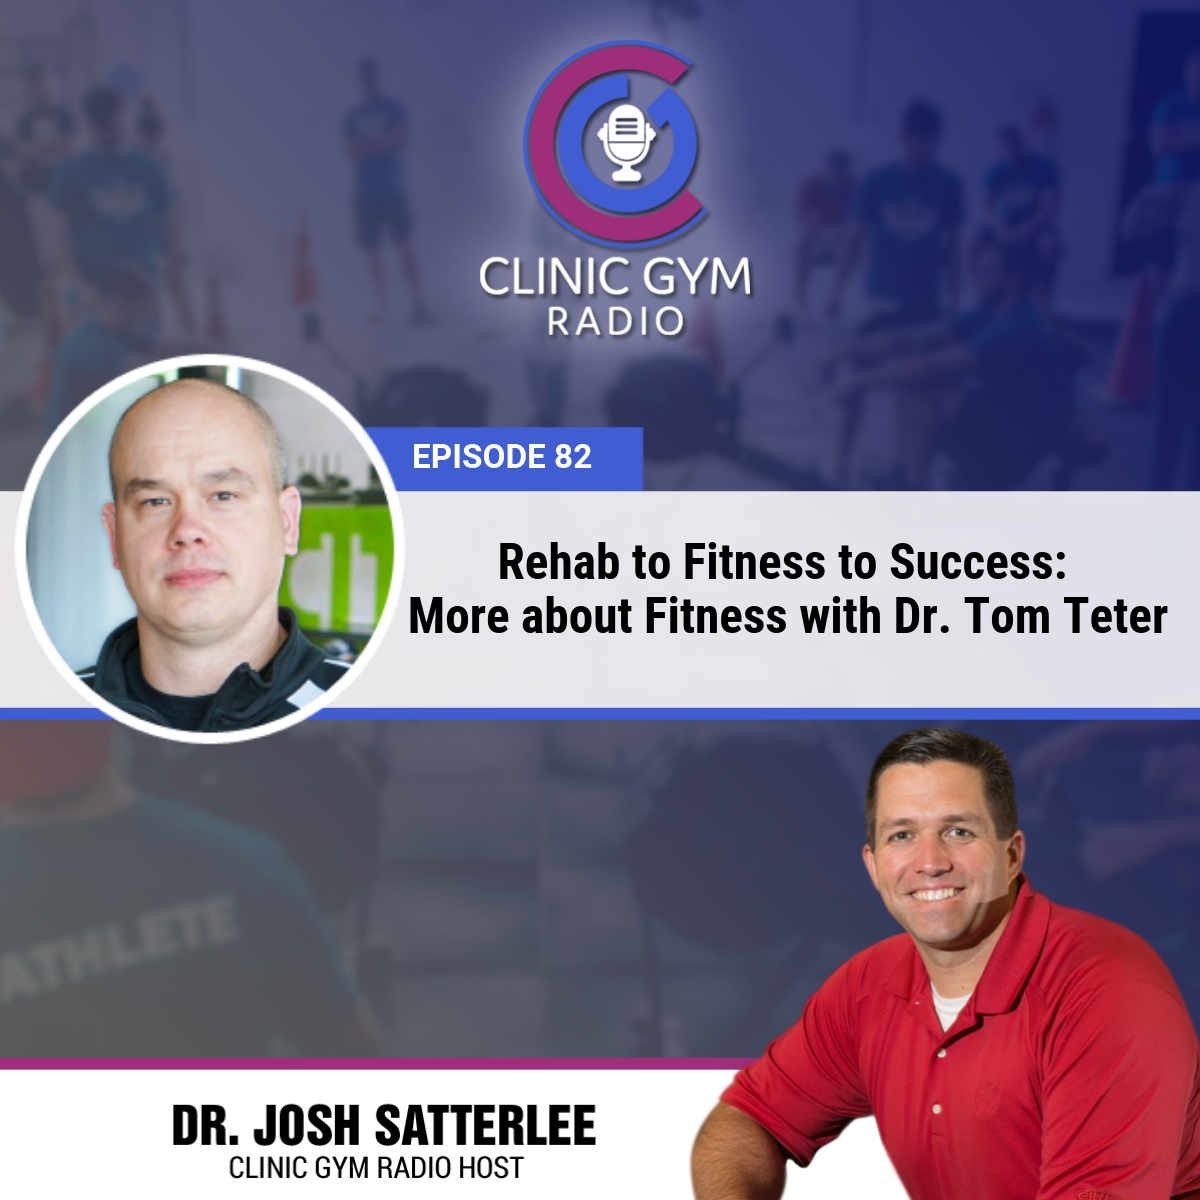 Rehab to Fitness to Success: More About Fitness with Dr. Tom Teter